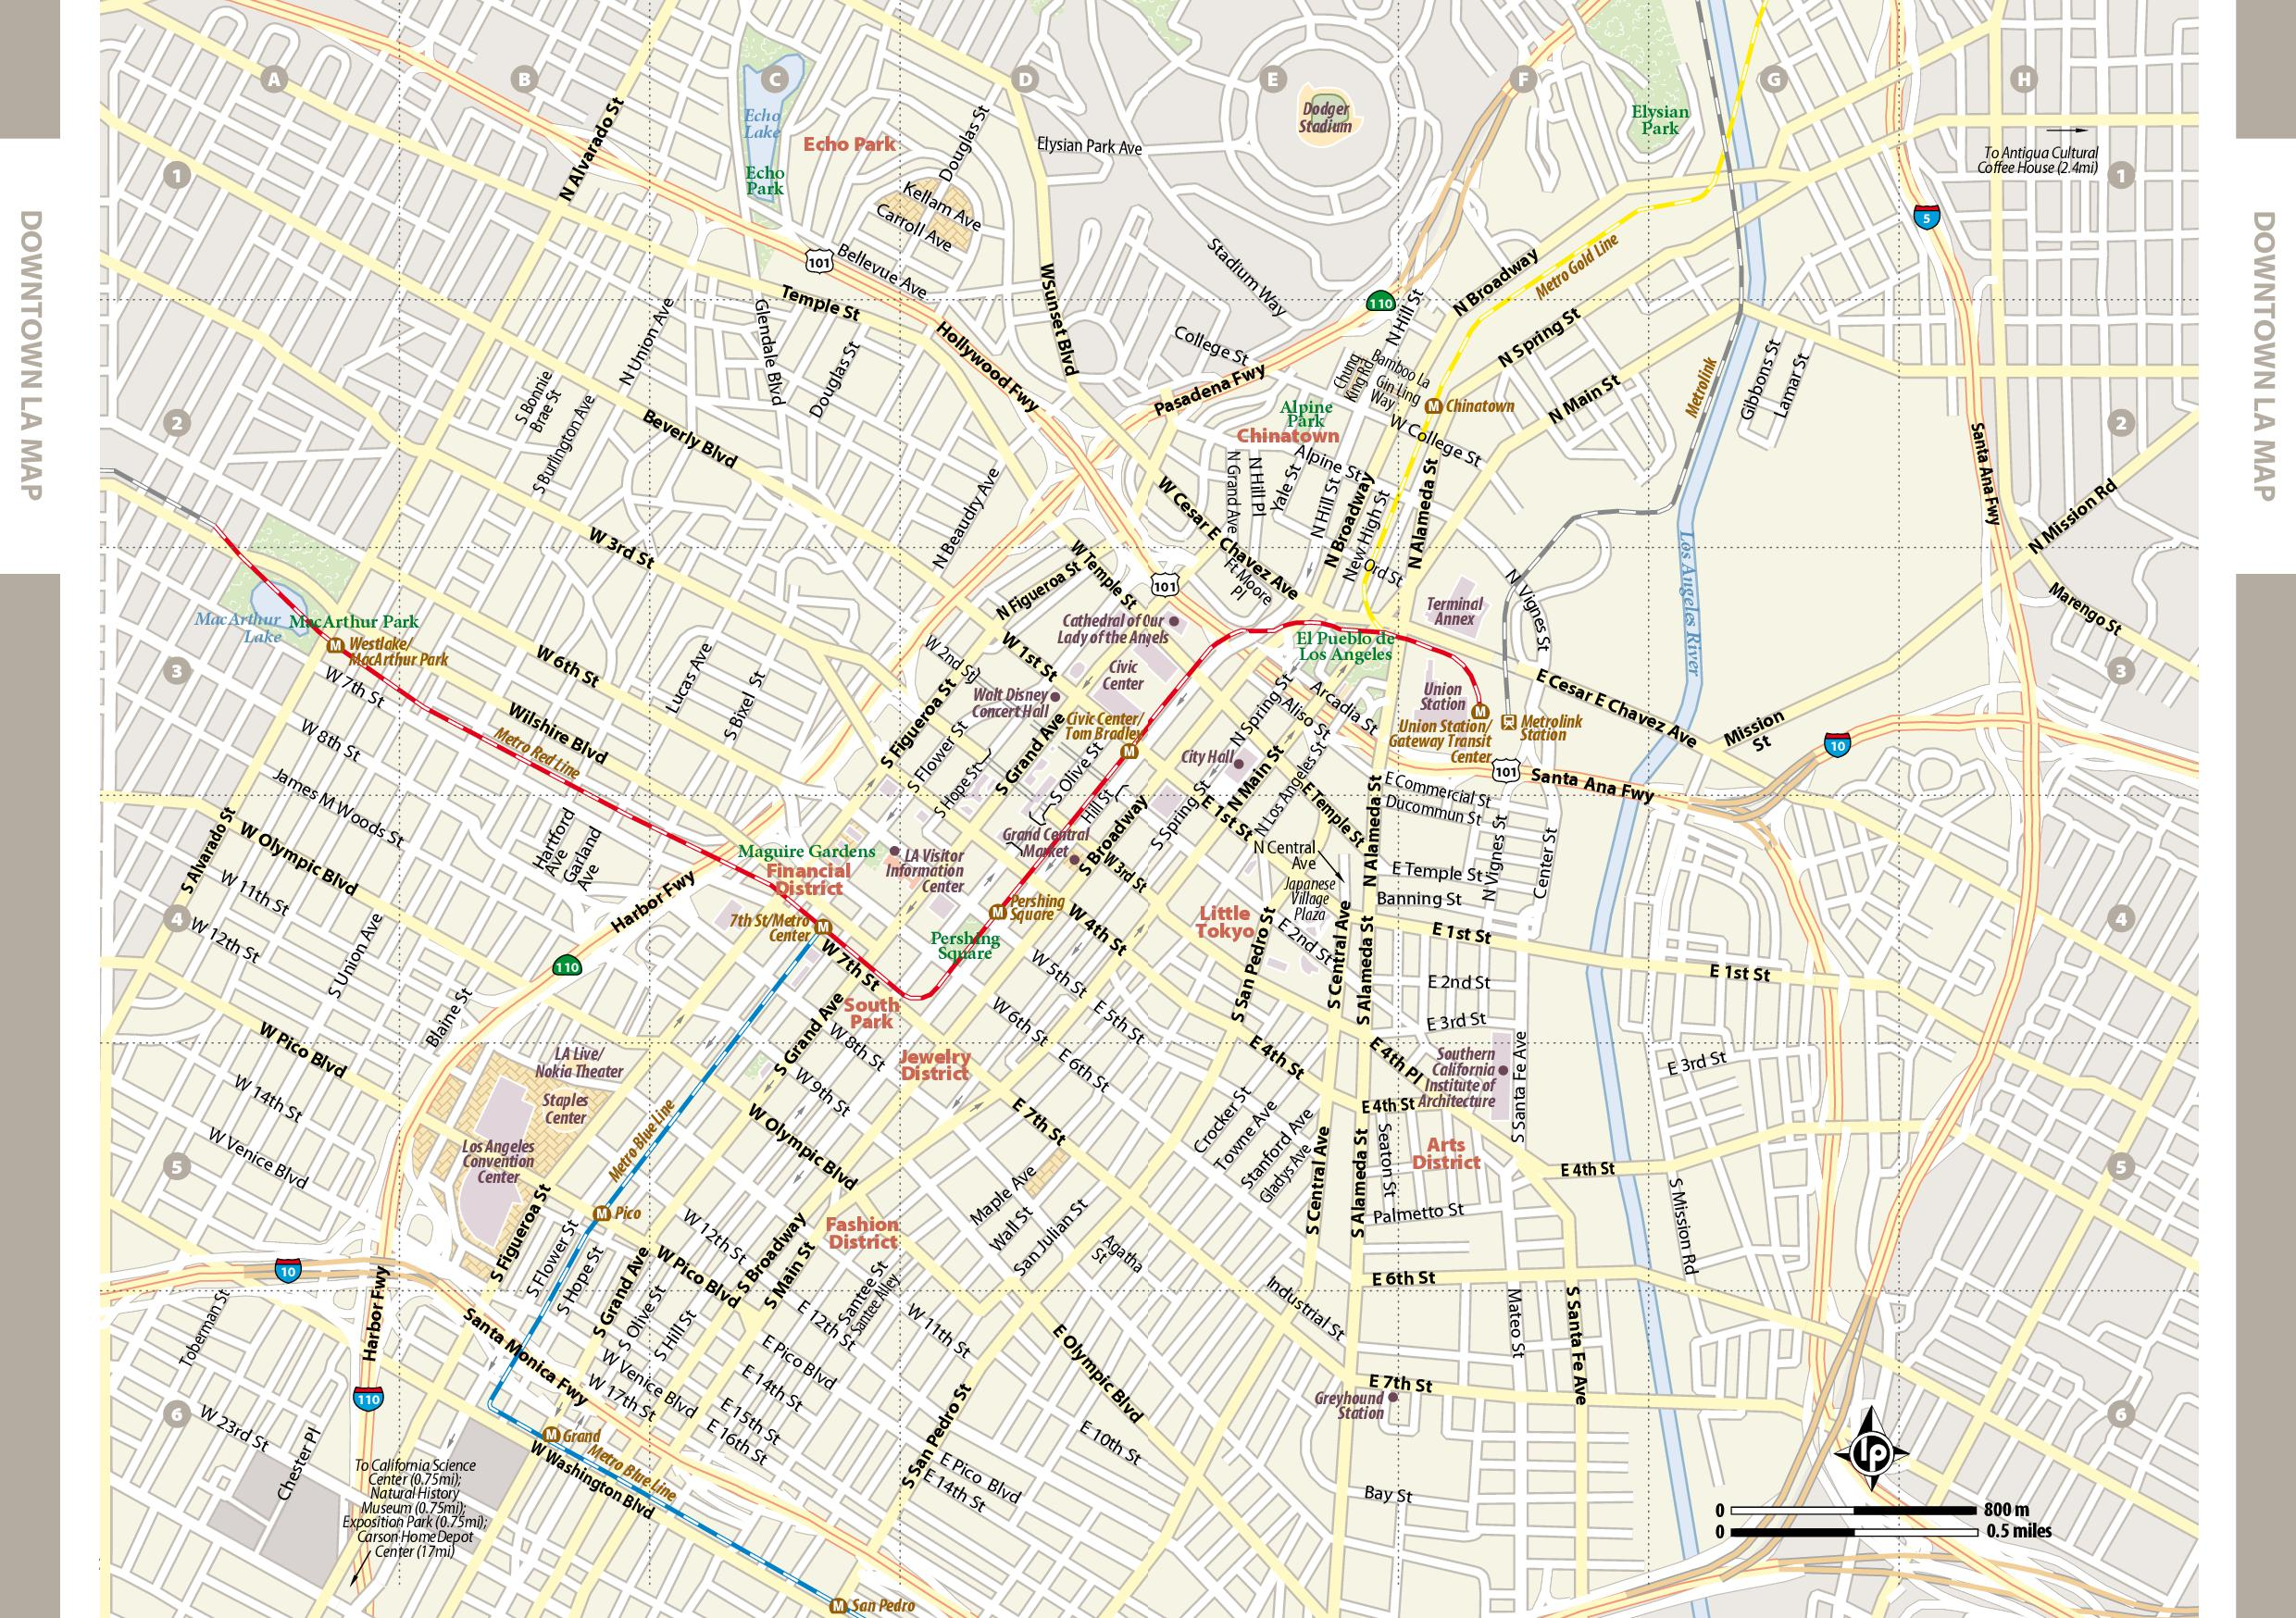 photo regarding Printable Map of Los Angeles identified as Huge Los Angeles Maps for Cost-free Down load and Print Higher